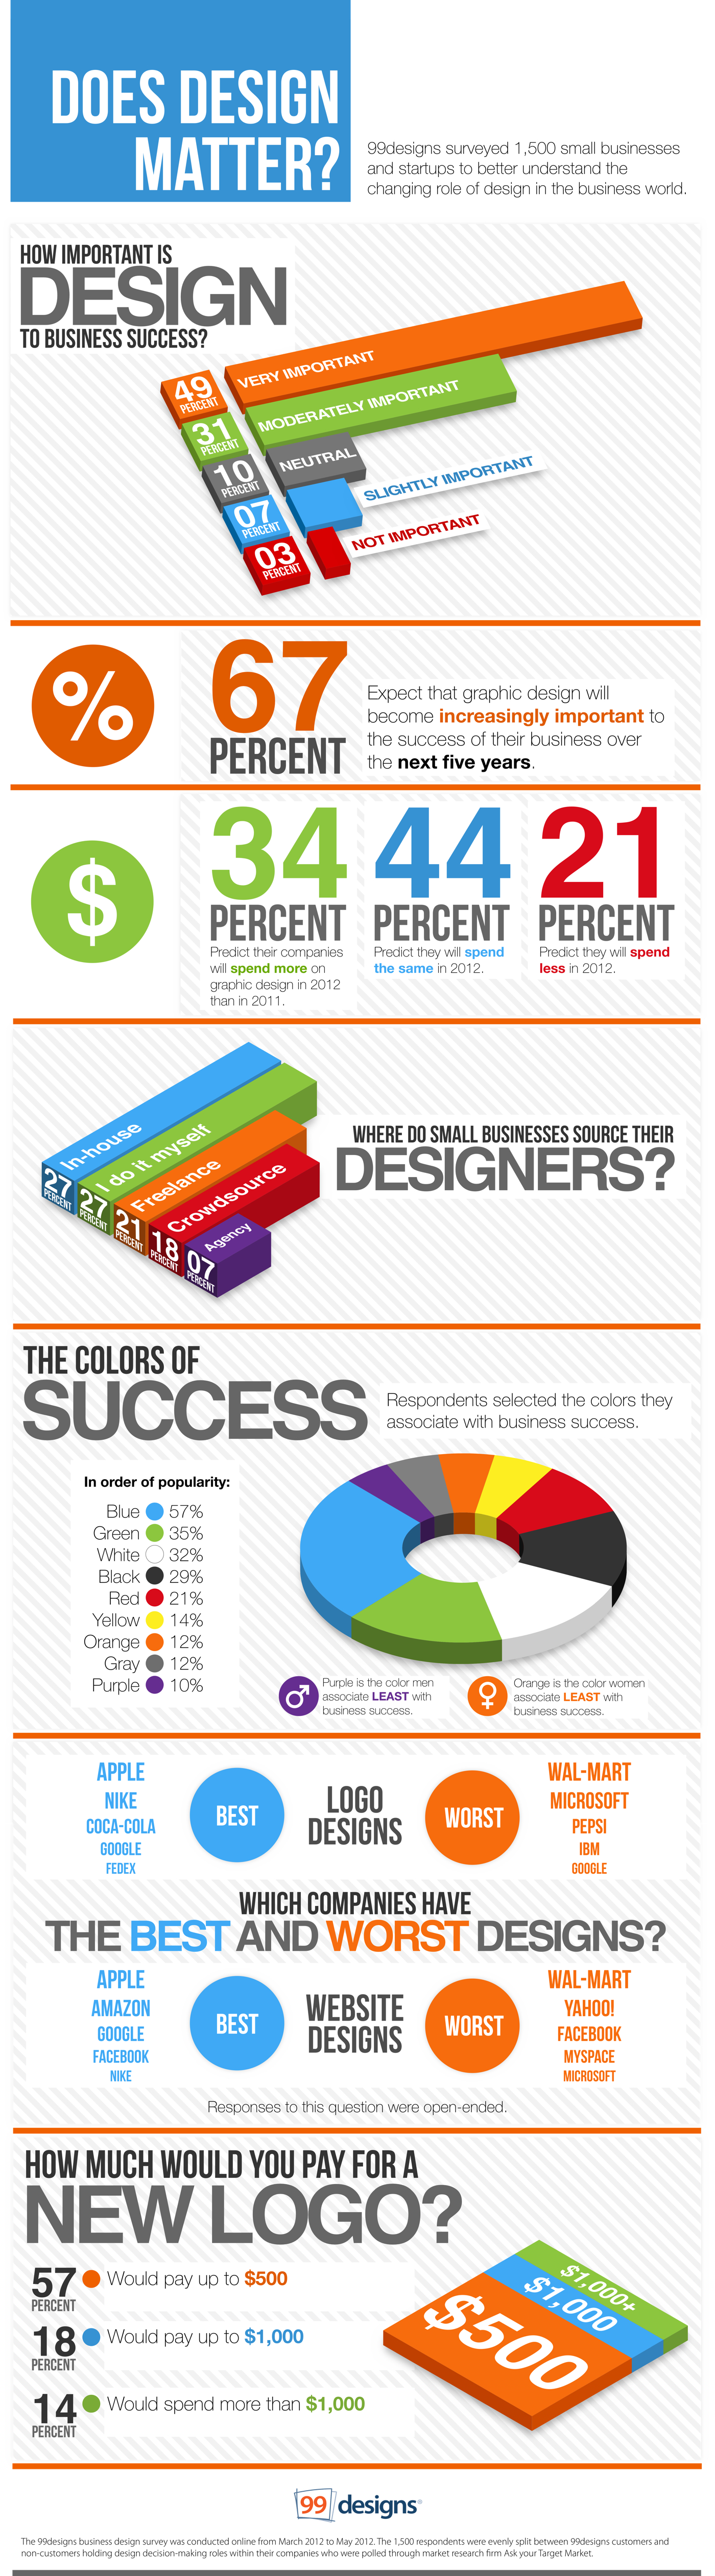 Infographic uses